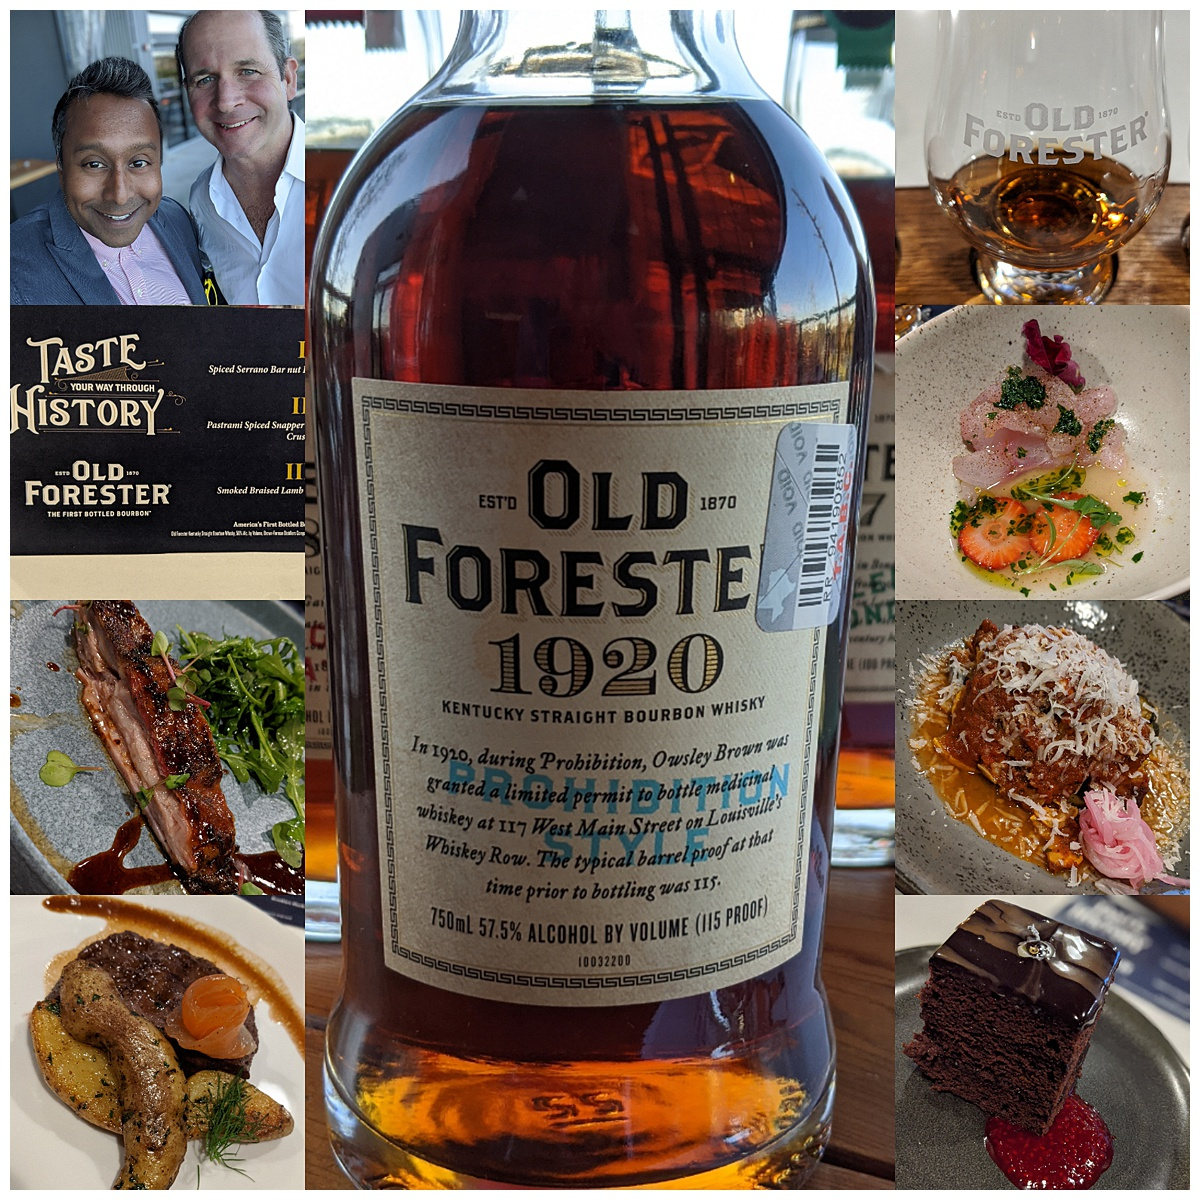 Old Forester tasting menu event at Provision montage